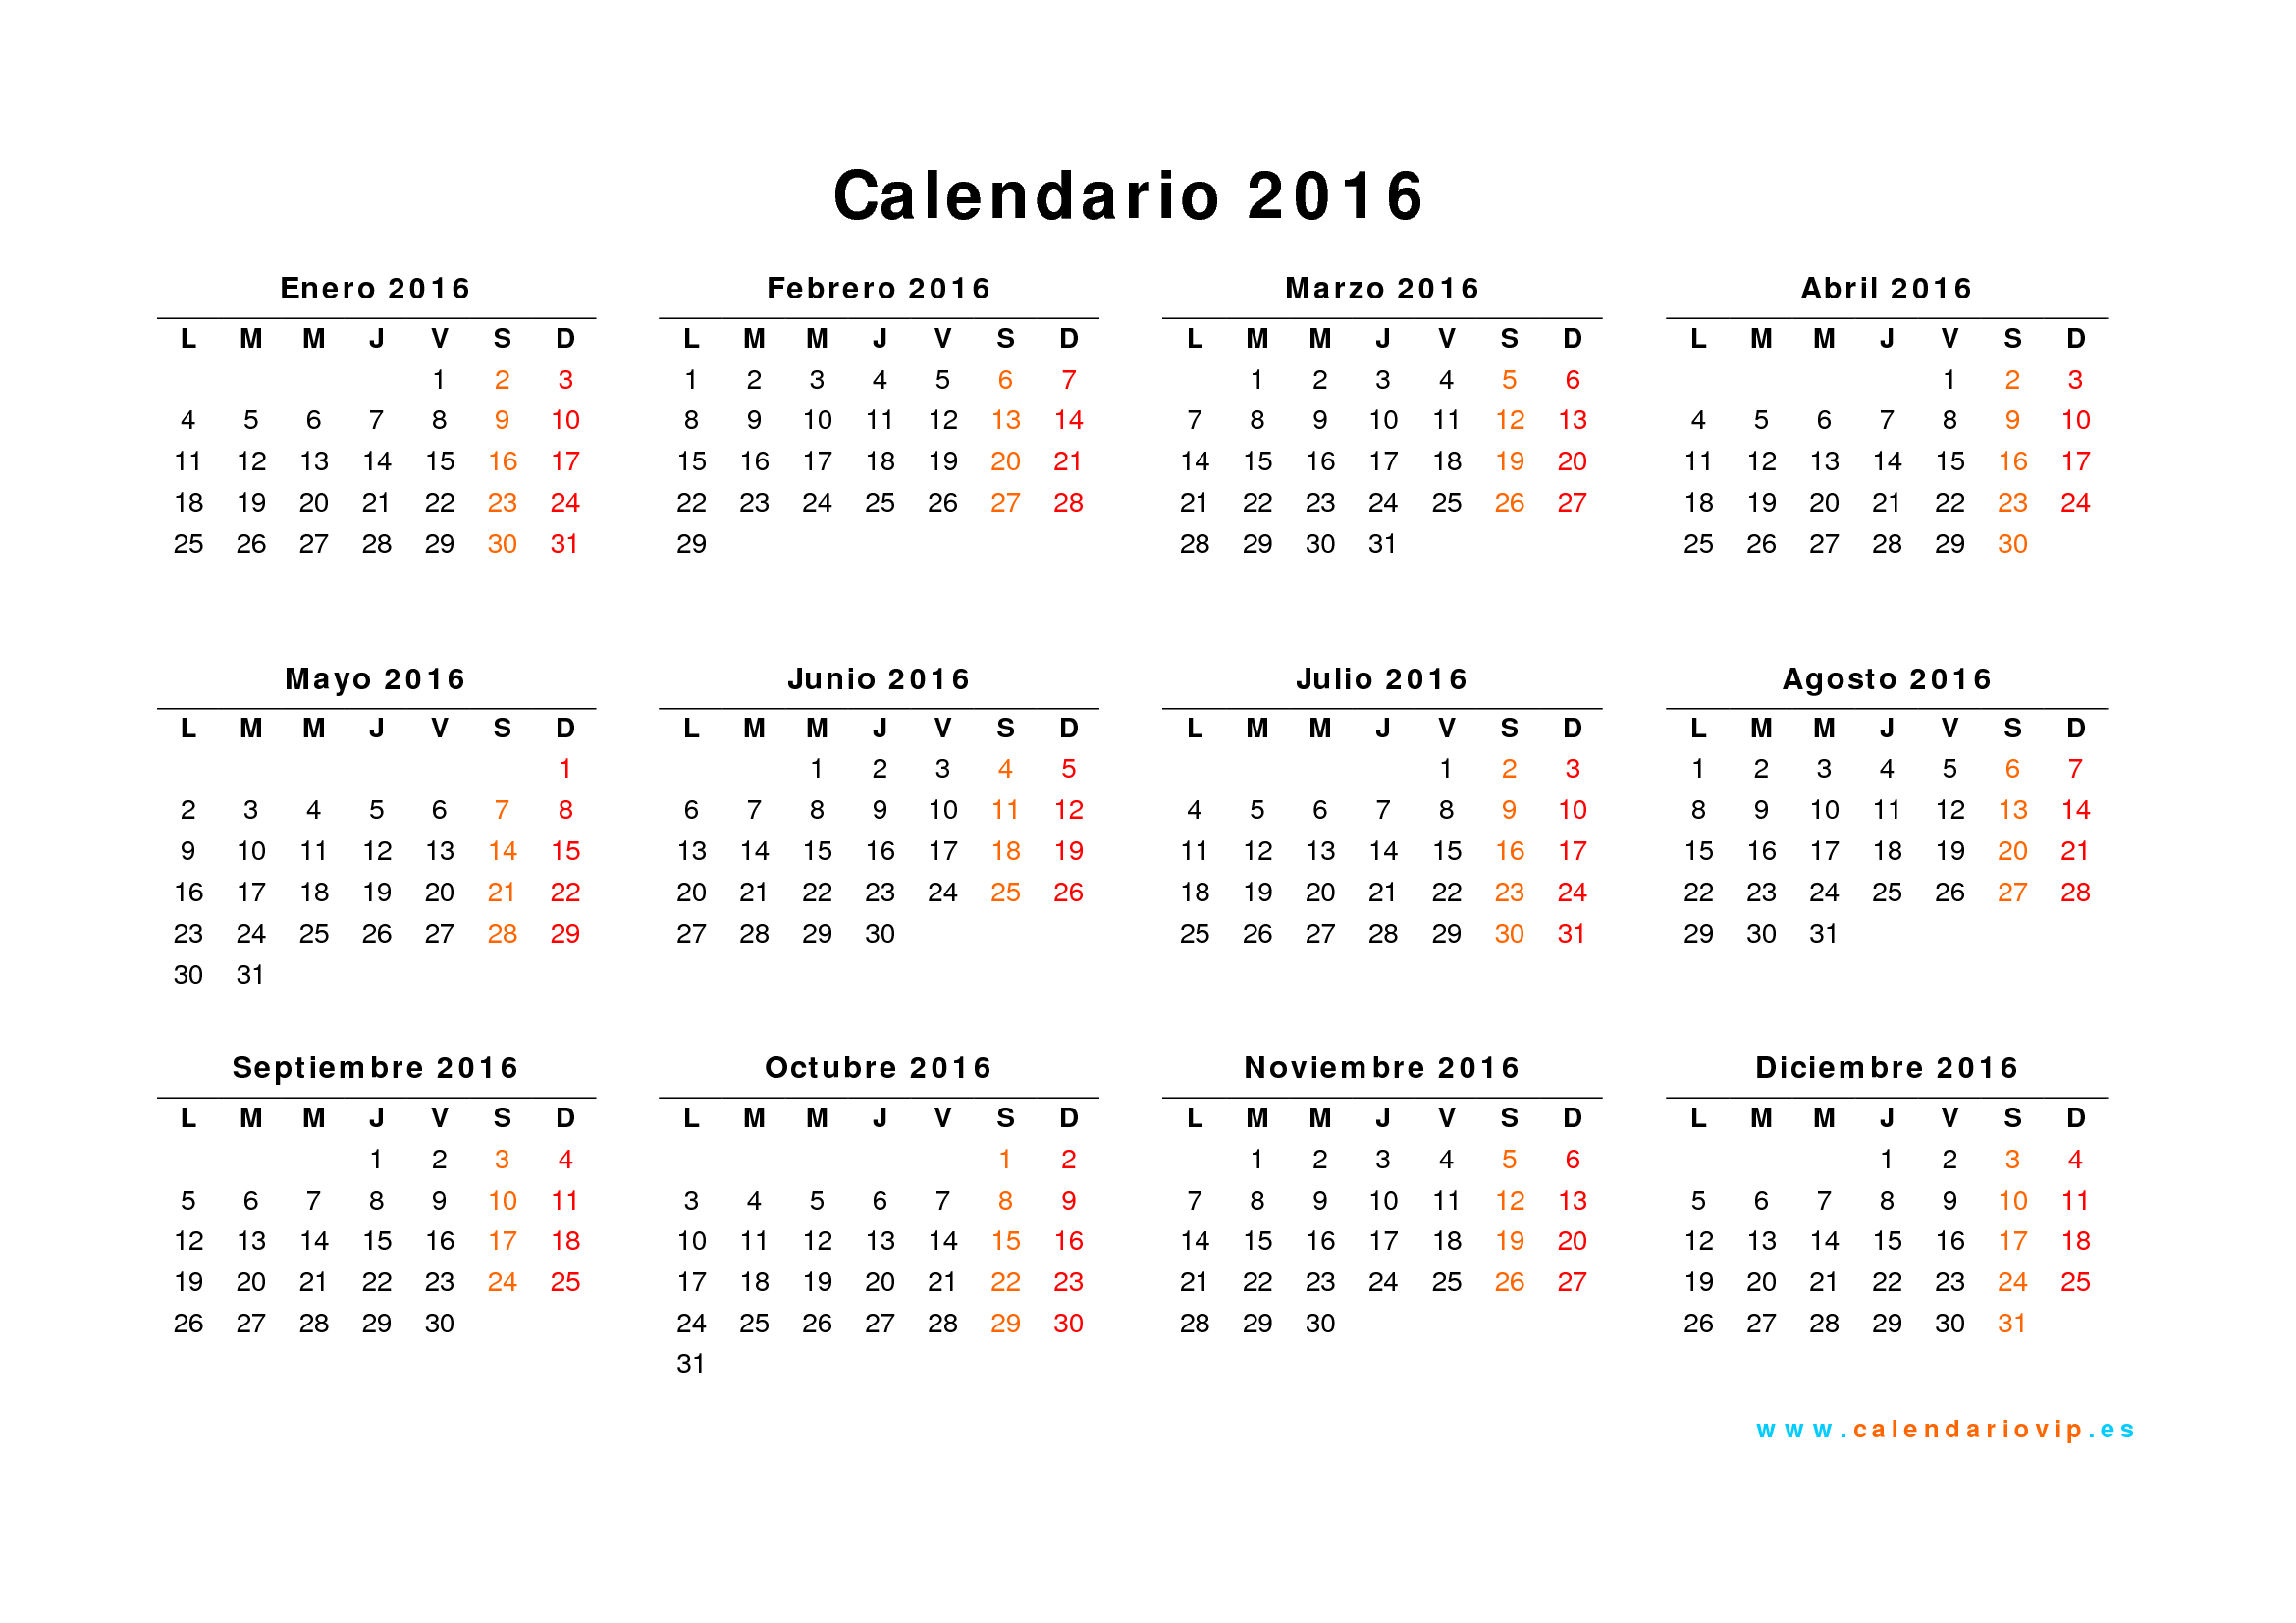 Calendario 2016 para imprimir gratis for Calendario junio 2016 para imprimir